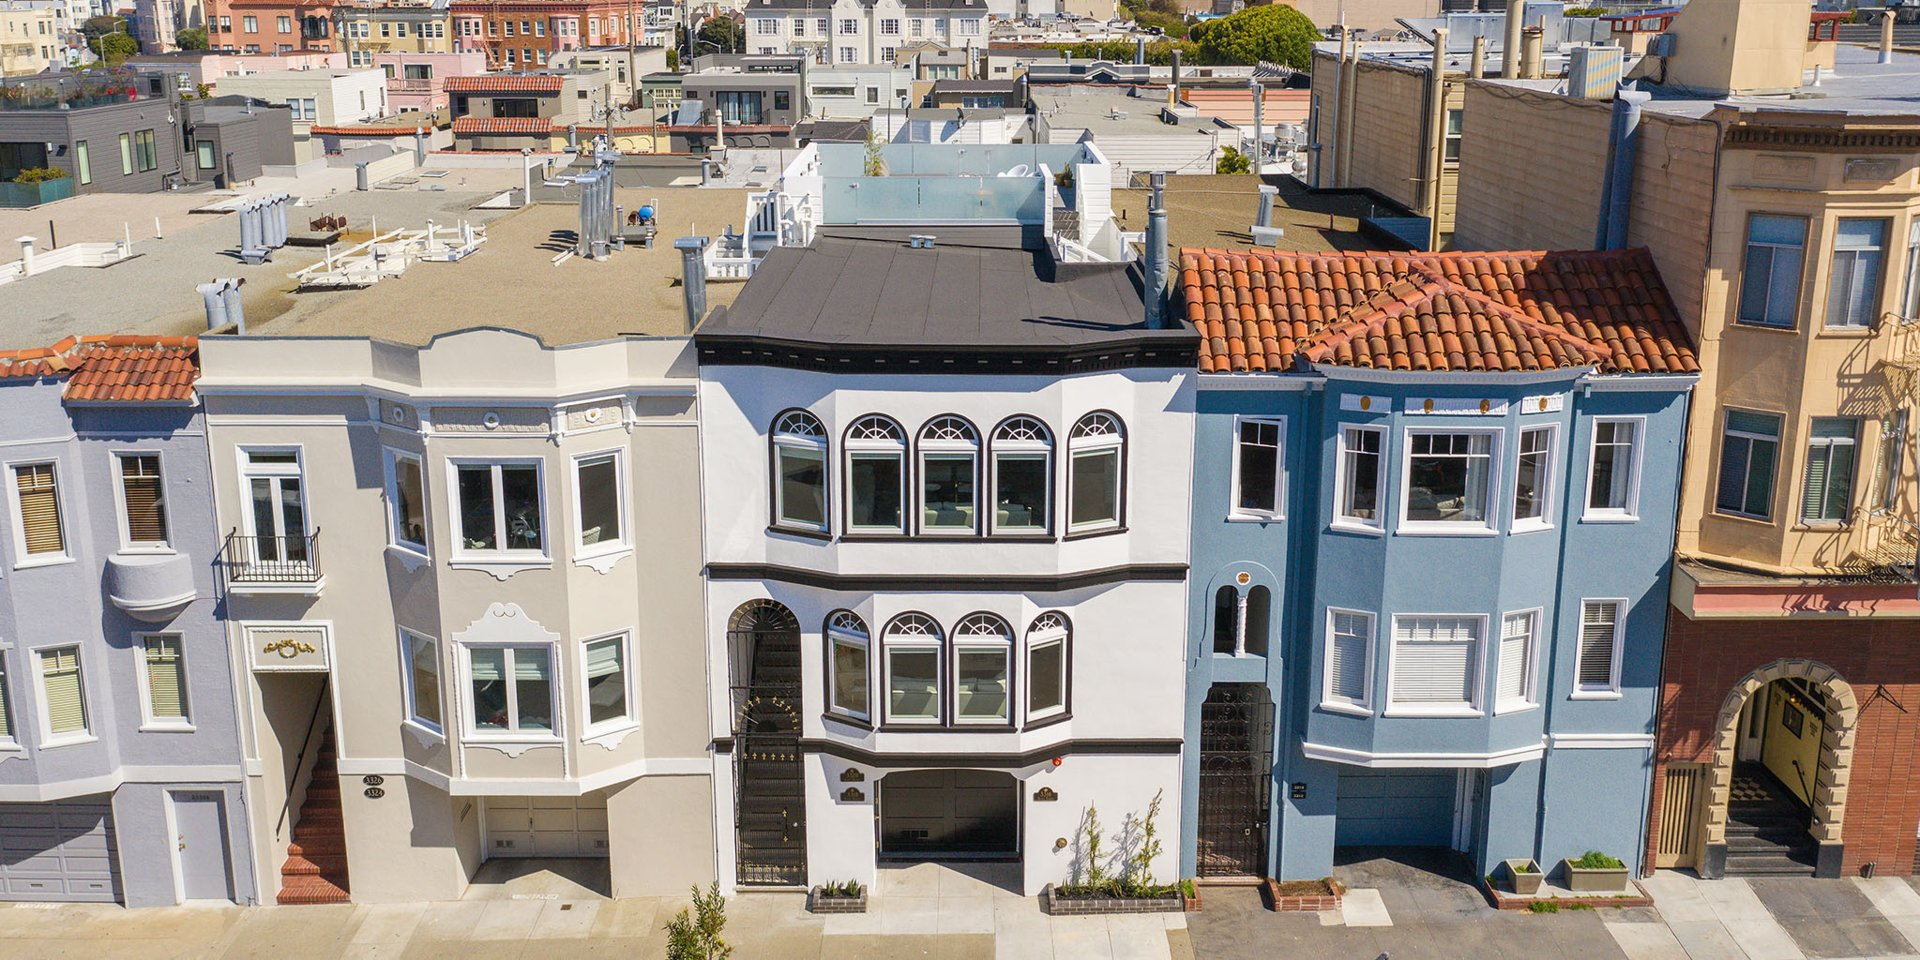 San Francisco real estate agents reveal most requested features for tech worker's multi-million dollar home buys